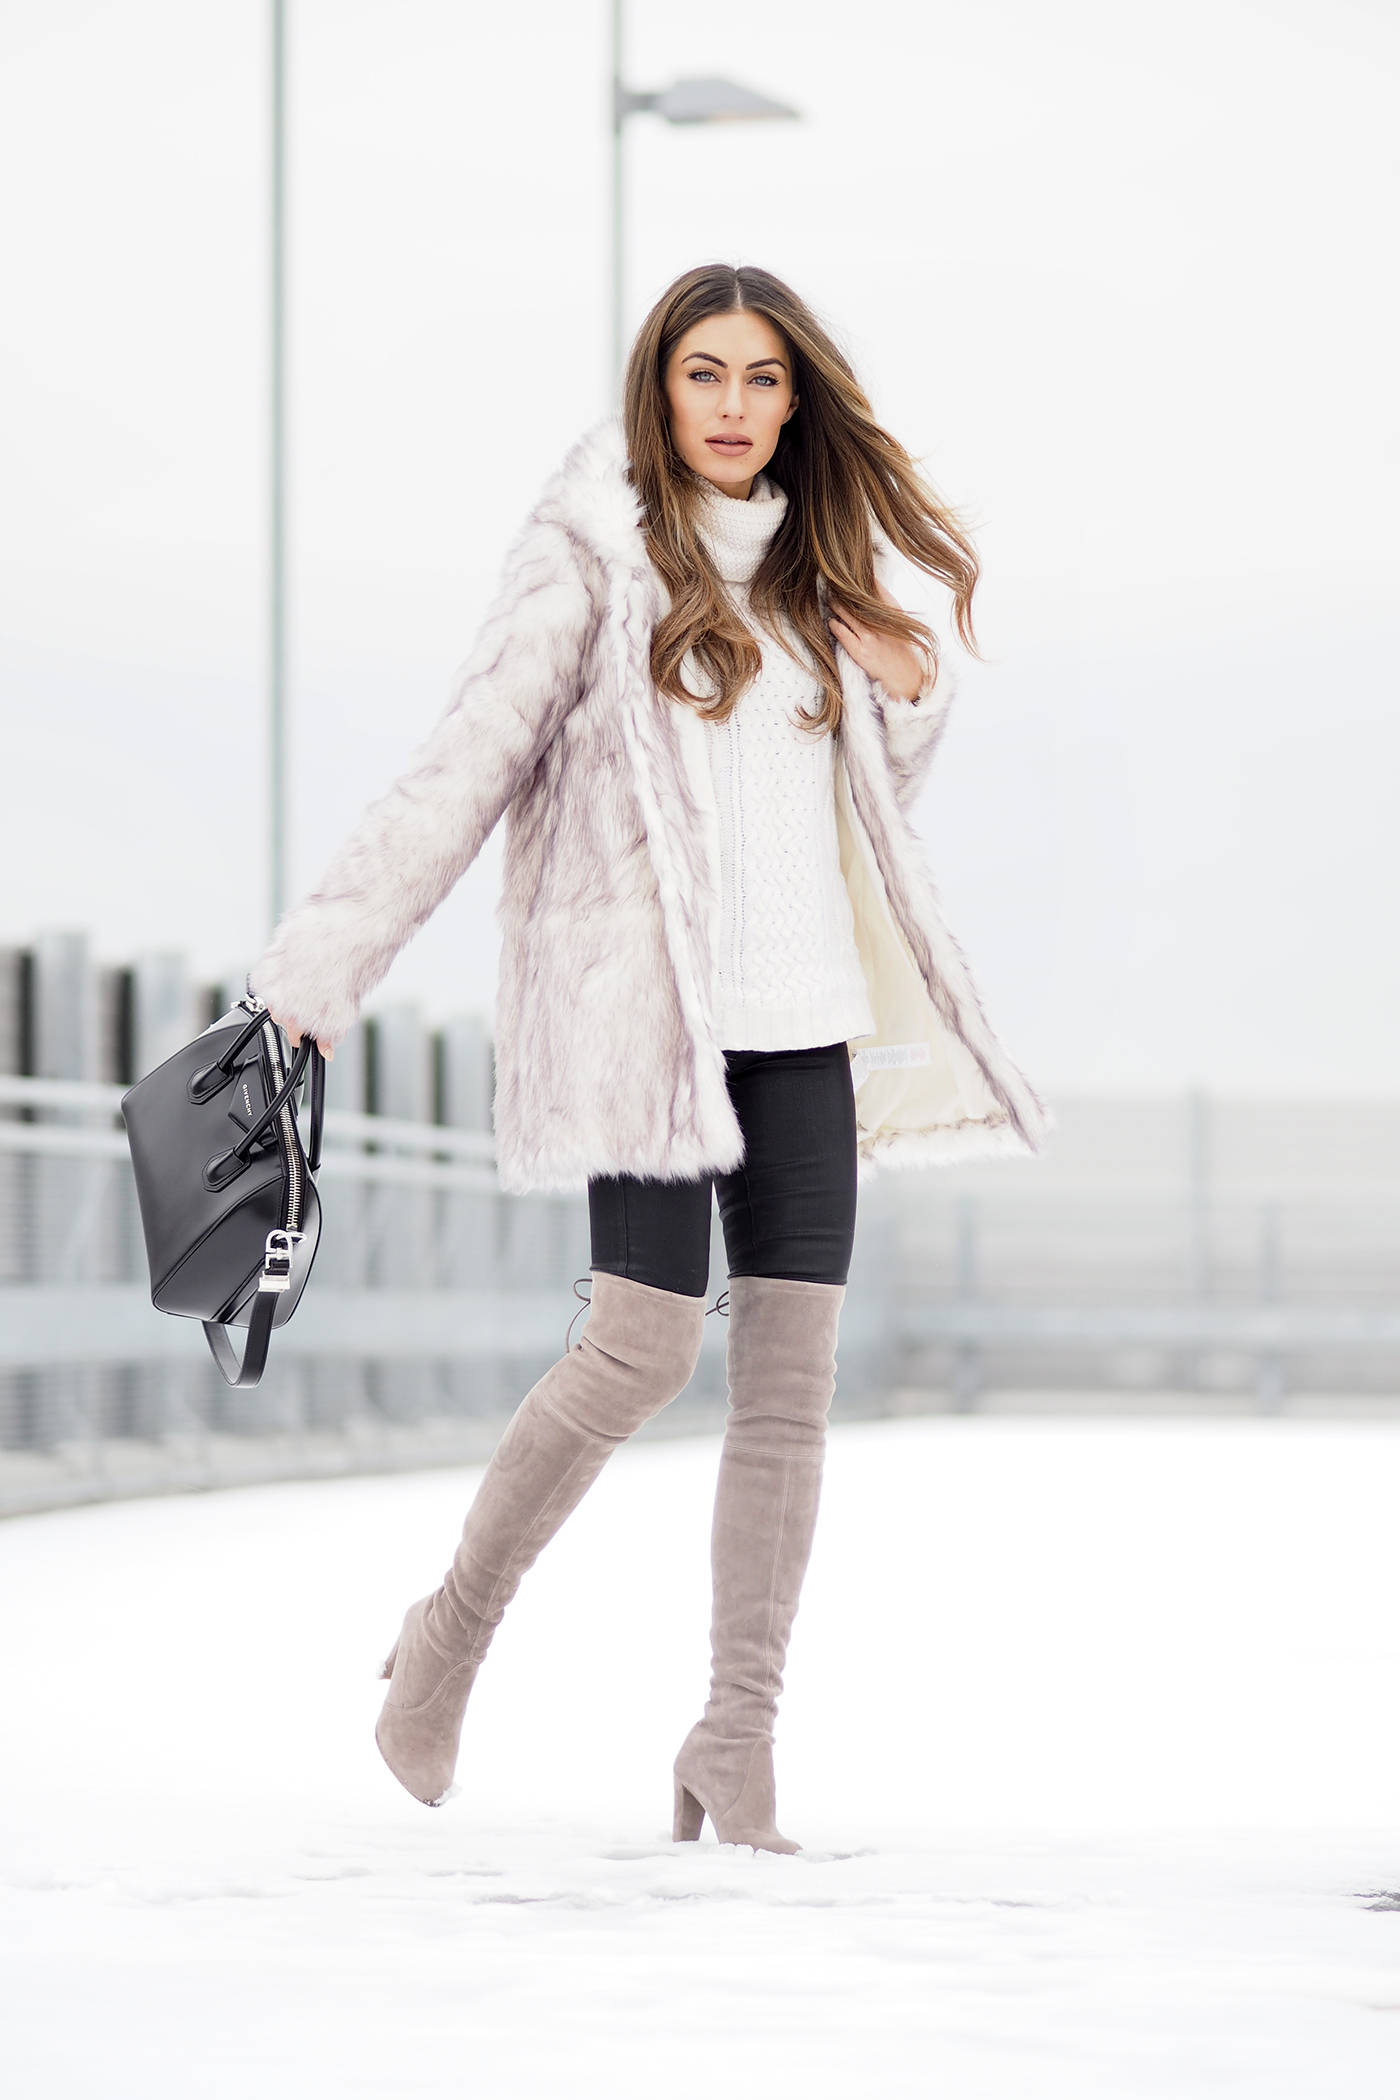 Coloured thigh high boots are always a winner! Lydia Lise Millen wears this gorgeous pastel pair with black jeans, a cream knit sweater, and a stunning faux fur coat from Boohoo. We love this look! Fur Coat: Boohoo, Jumper: Jigsaw, Bag: Givenchy, Jeans: Paige, Boots: Stuart Weitzman.